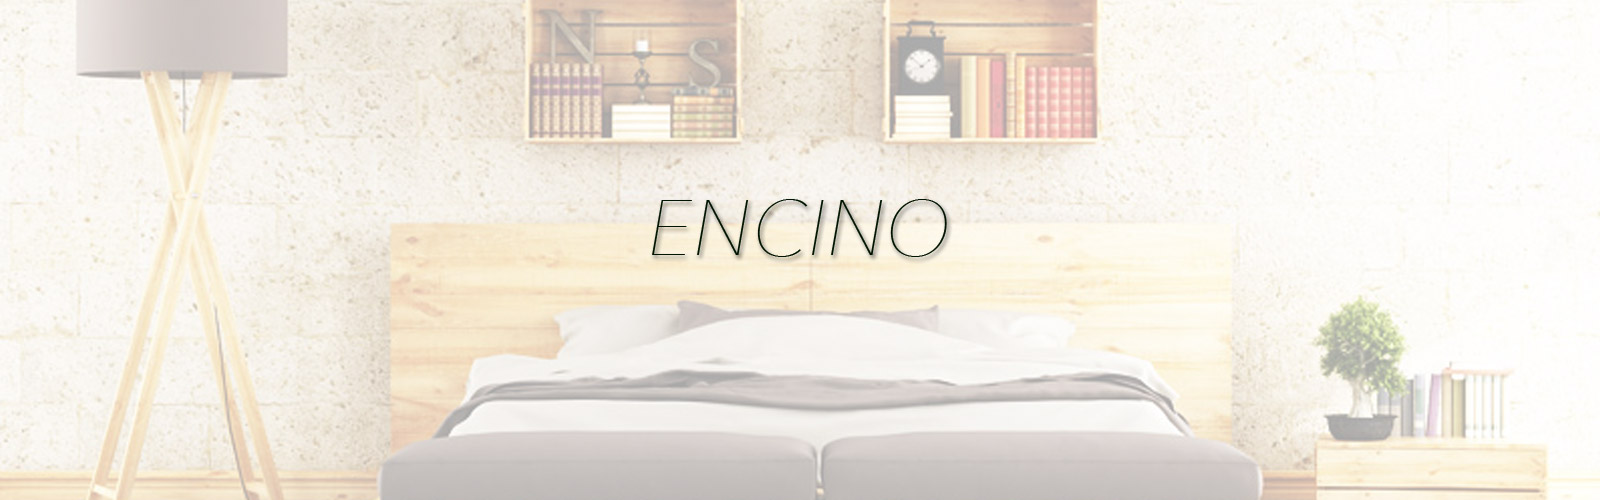 the futon shop encino futons los angeles california   organic mattresses los angeles      rh   thefutonshop